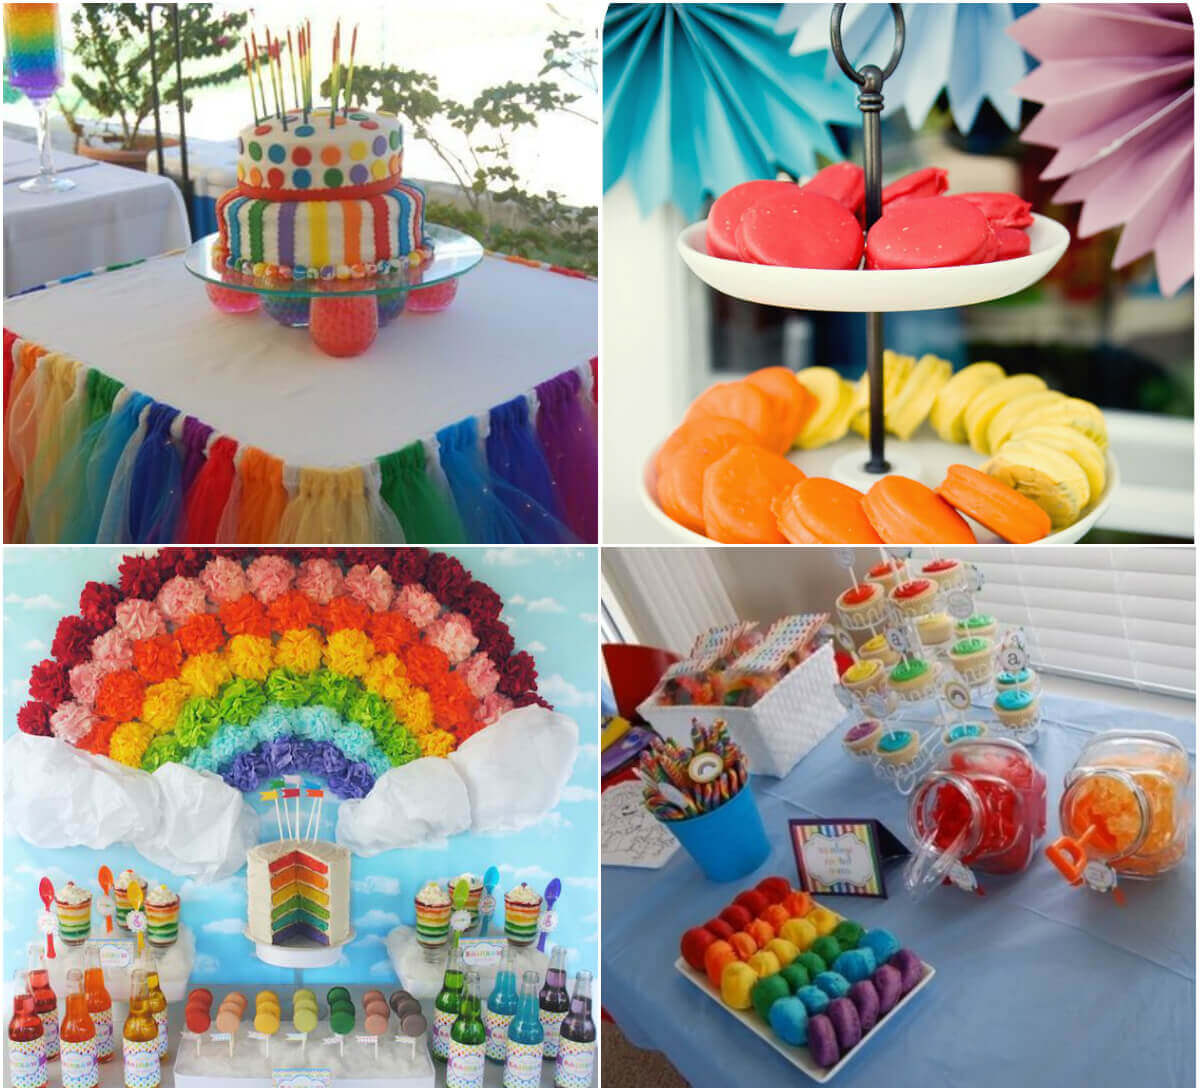 Regenbogen-Party mit Regenbogen-Dekoration